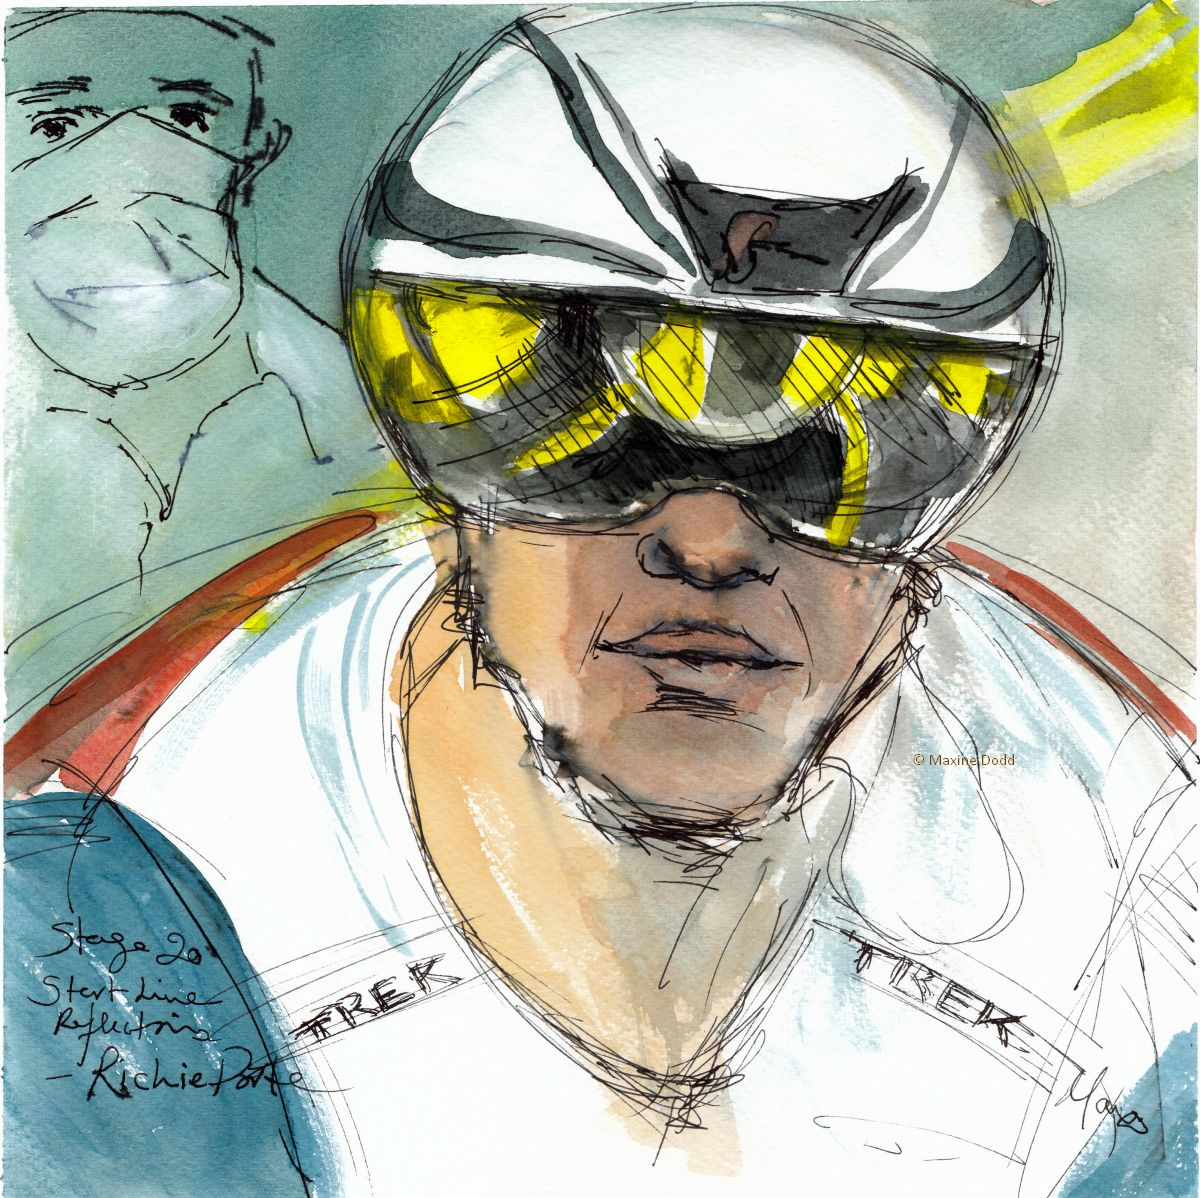 Start line reflections-Richie Porte, watercolour, pen and ink, by Maxine Dodd